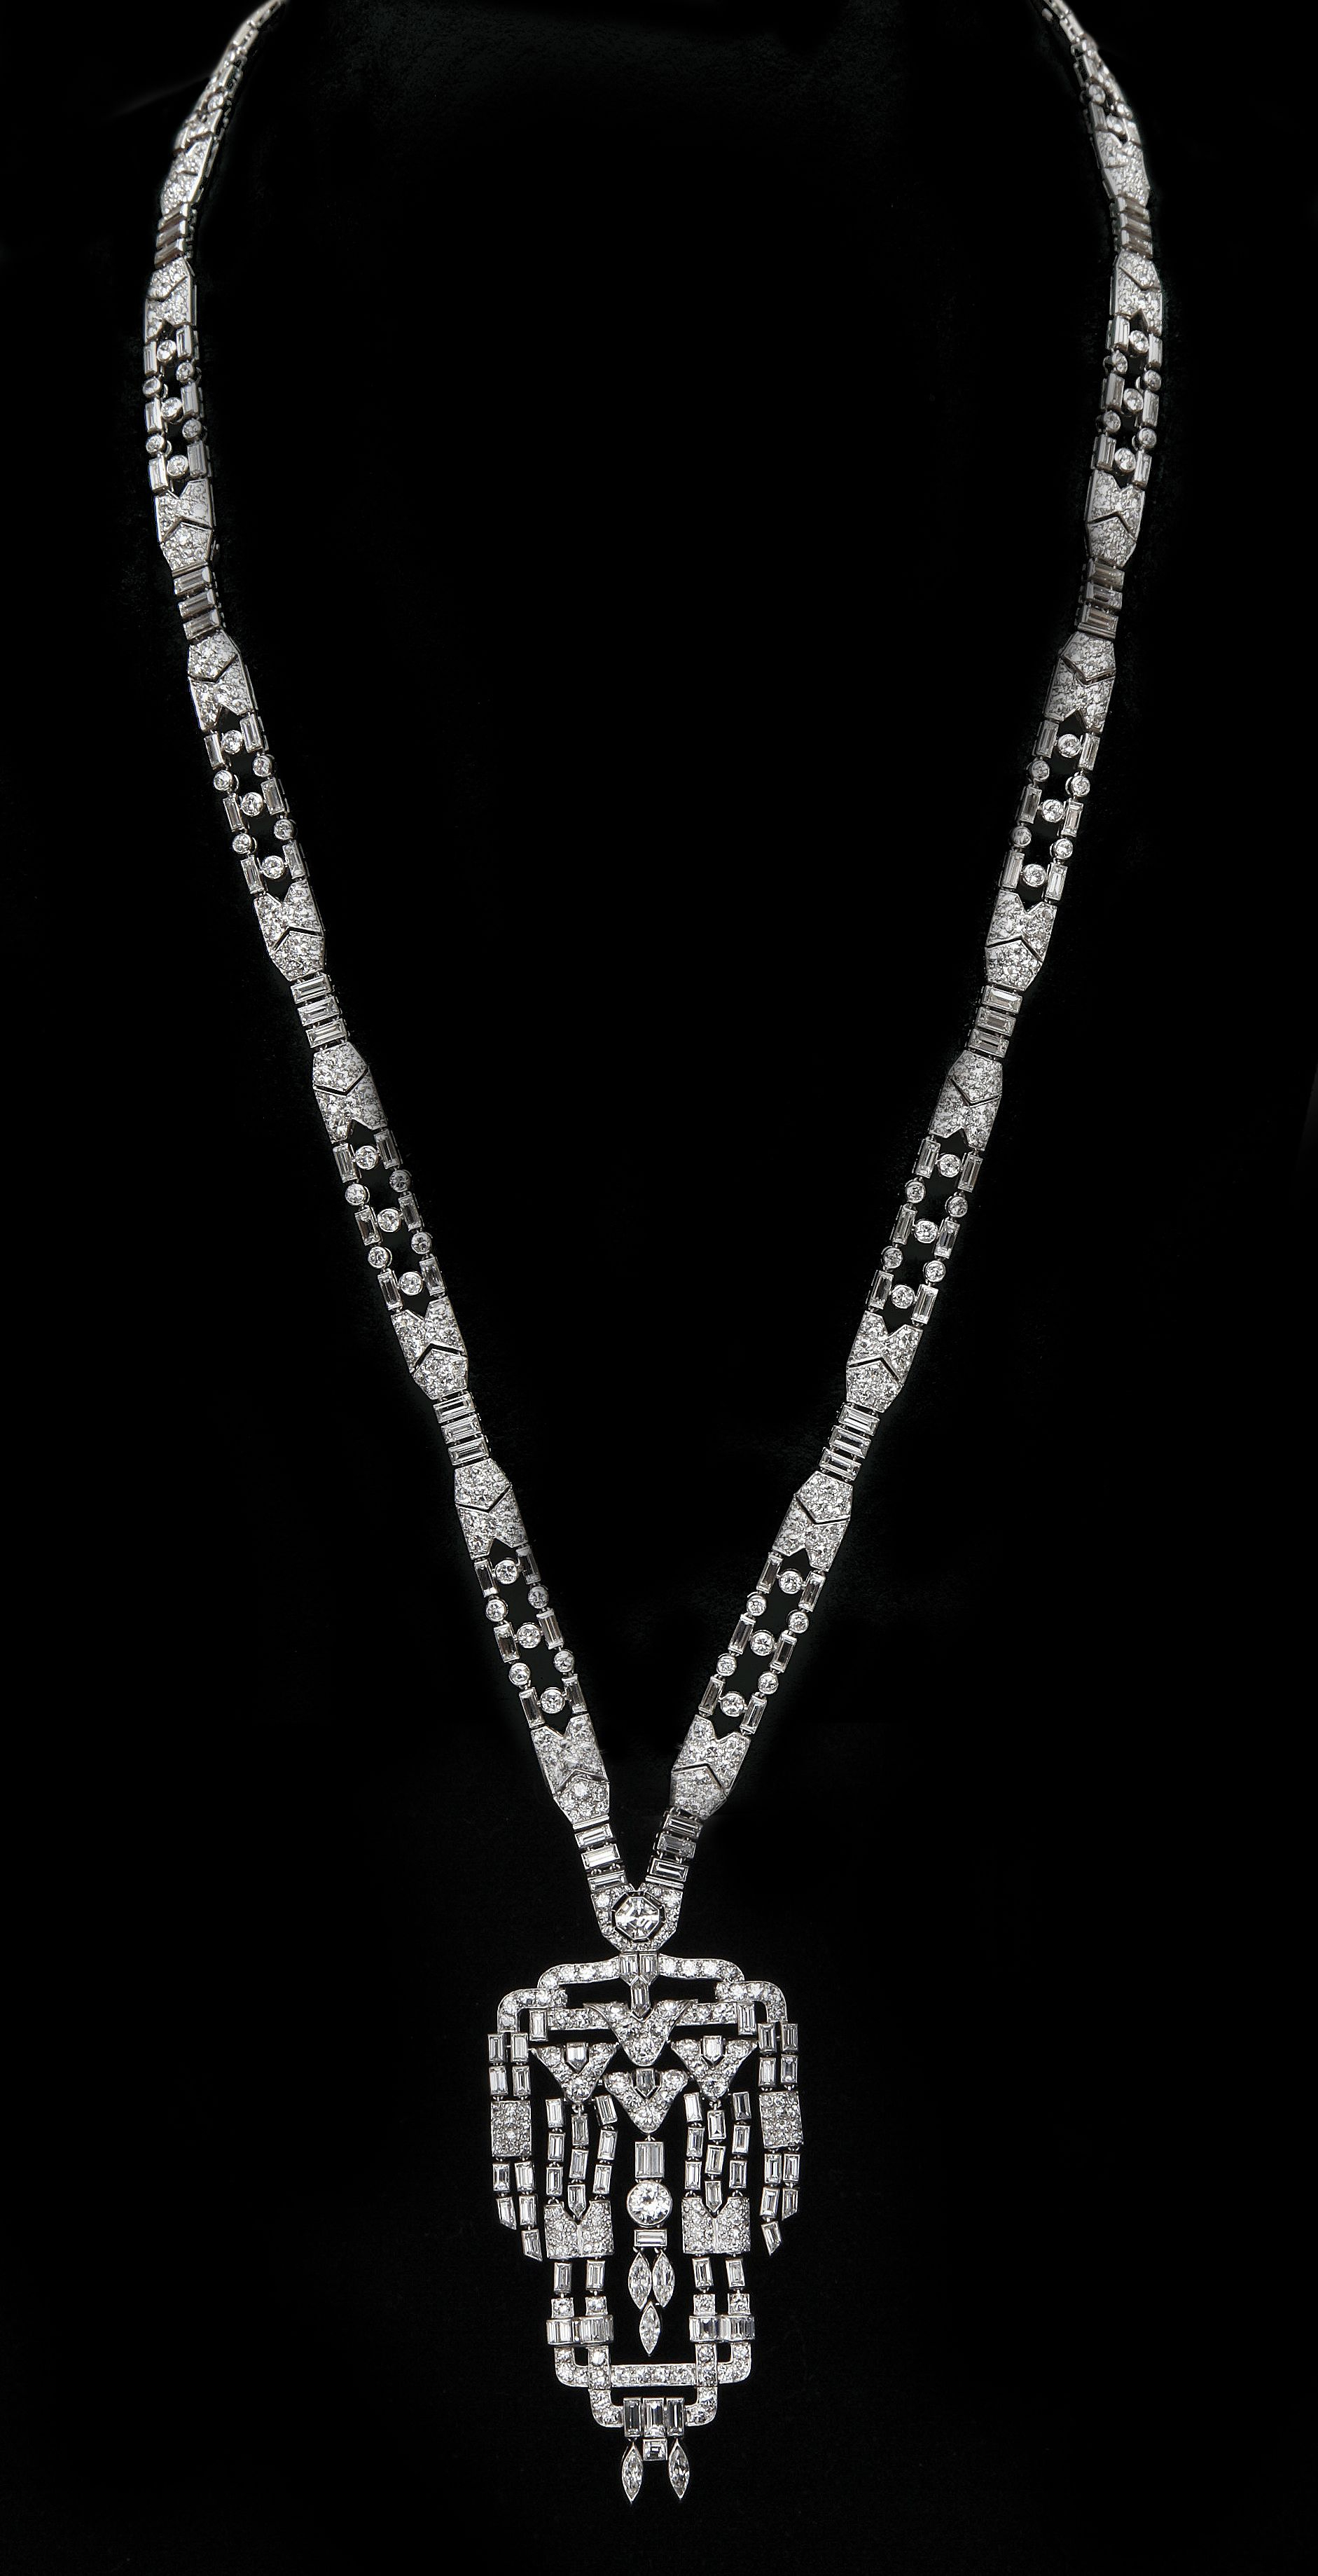 Art Deco Diamond Sautoir In Platinum, Breaks Into 4 Pertaining To Most Up To Date Diamond Sautoir Necklaces In Platinum (View 10 of 25)